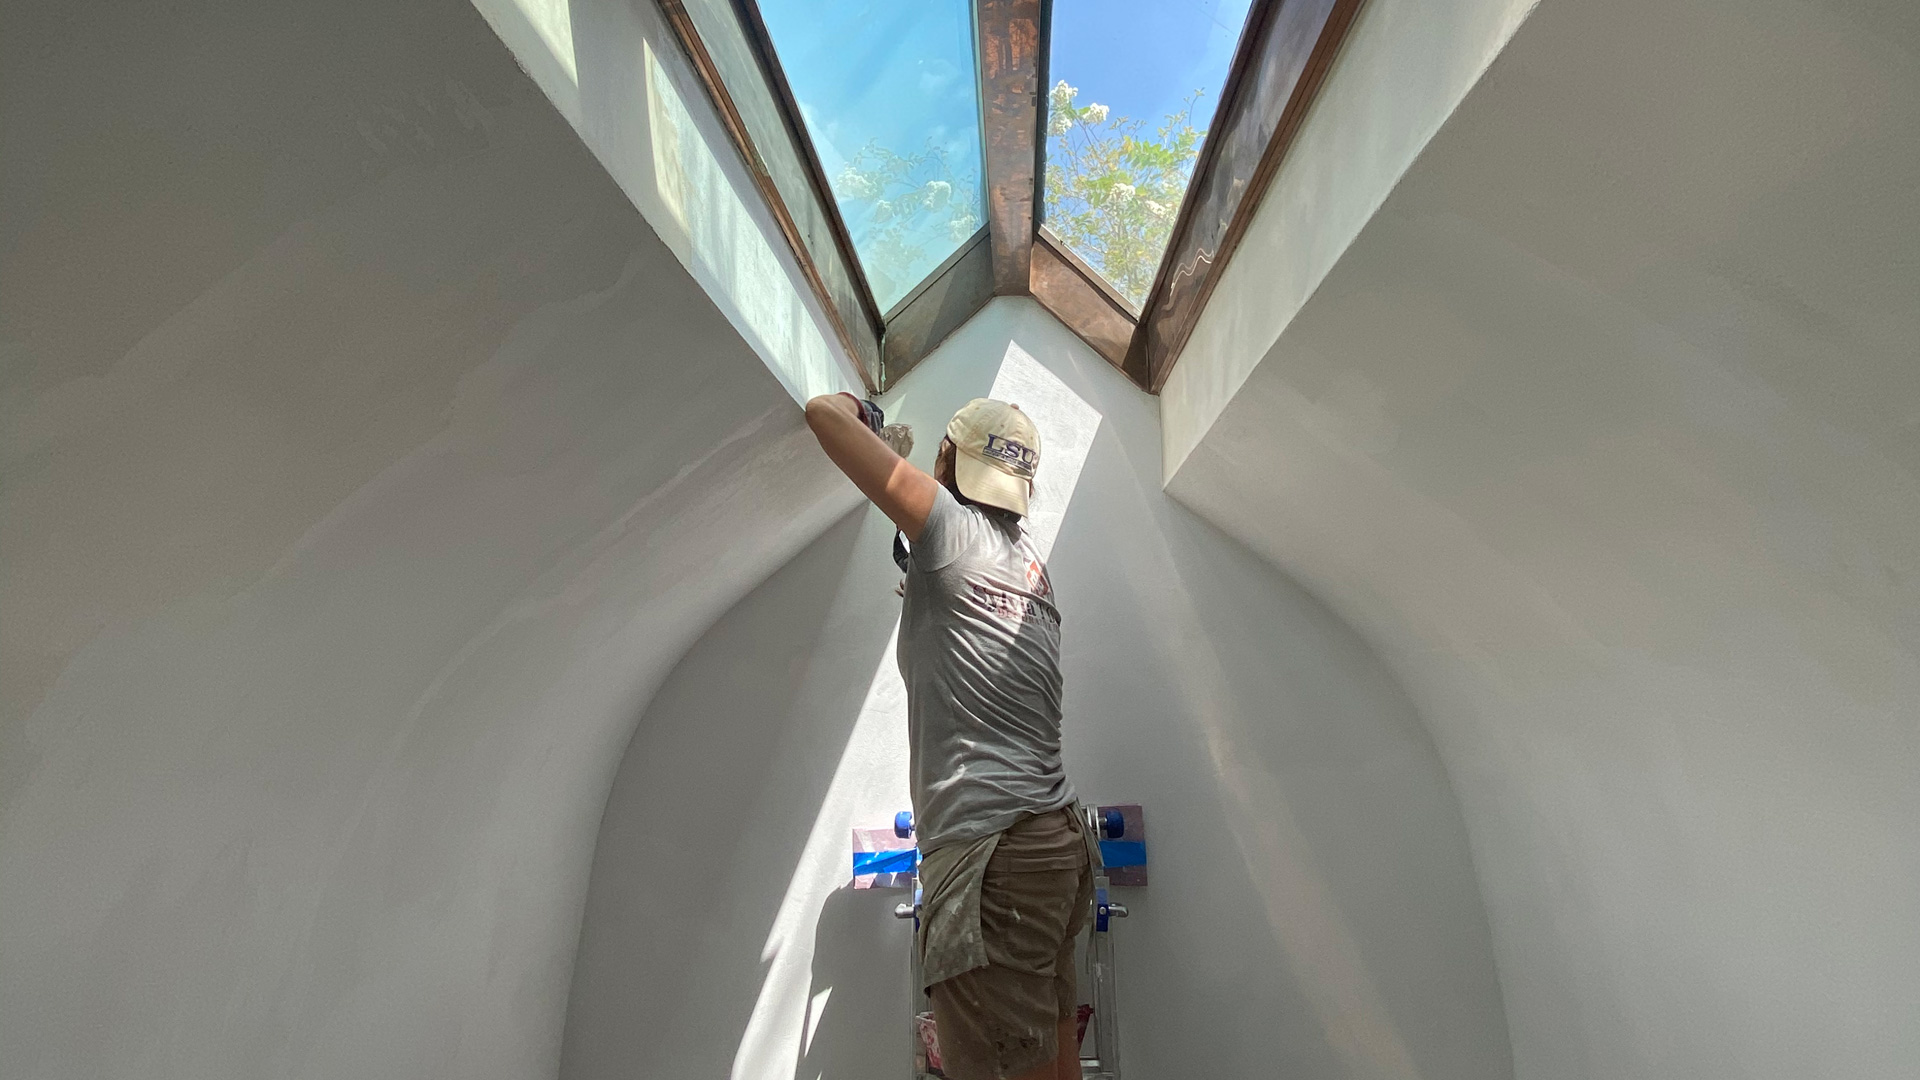 Sylvia T Designs – All-over tadelakt in a master bathroom arch and skylight in a Baton Rouge residential project. Here, we are applying a dry application of this traditional, versatile, and beautiful Moroccan plaster technique.